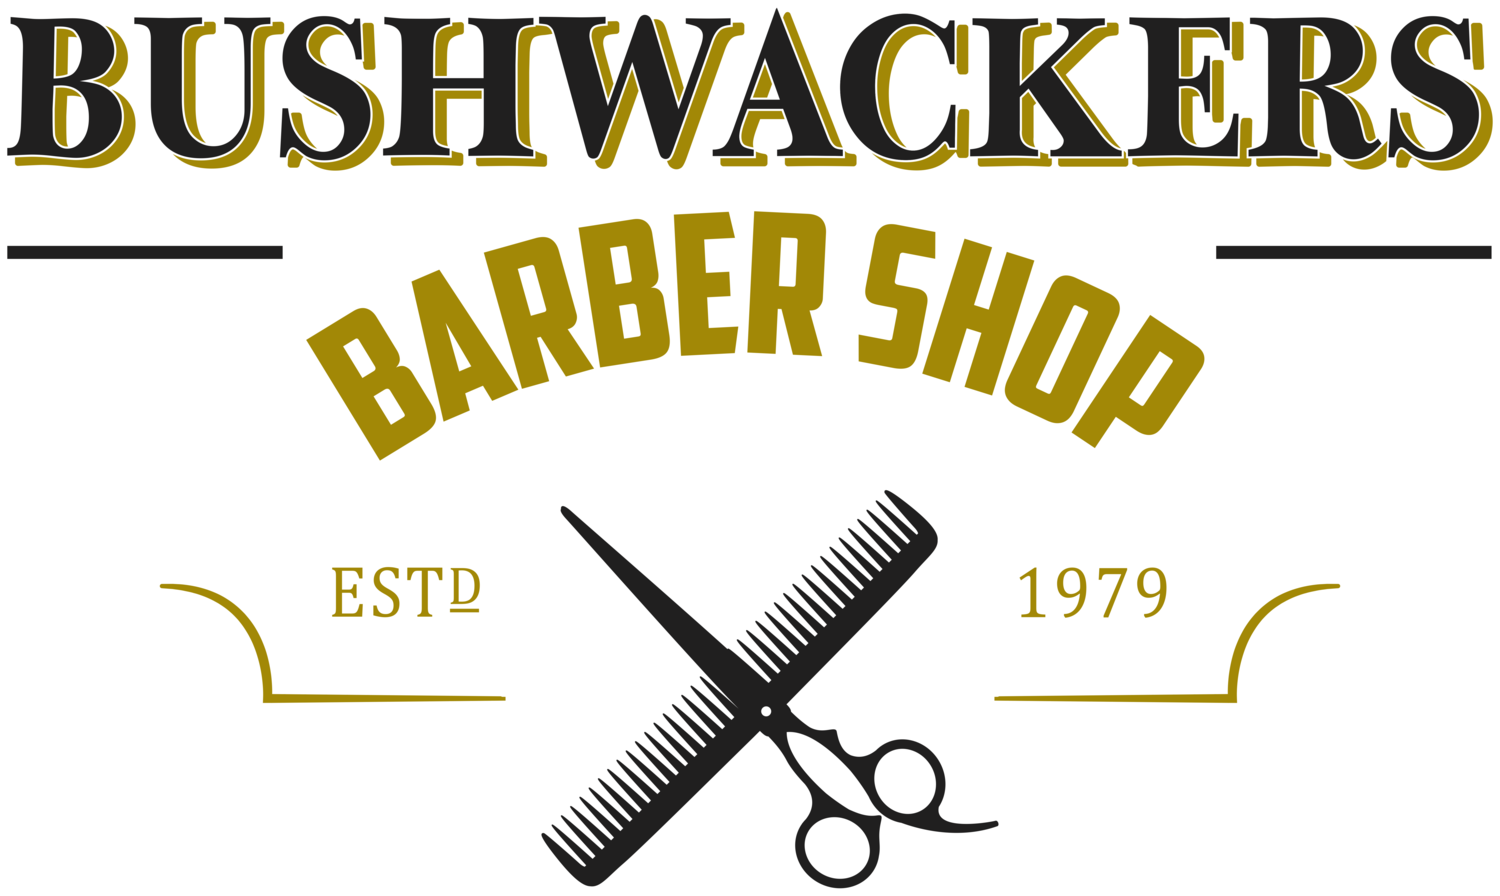 Bushwackers Barbershop